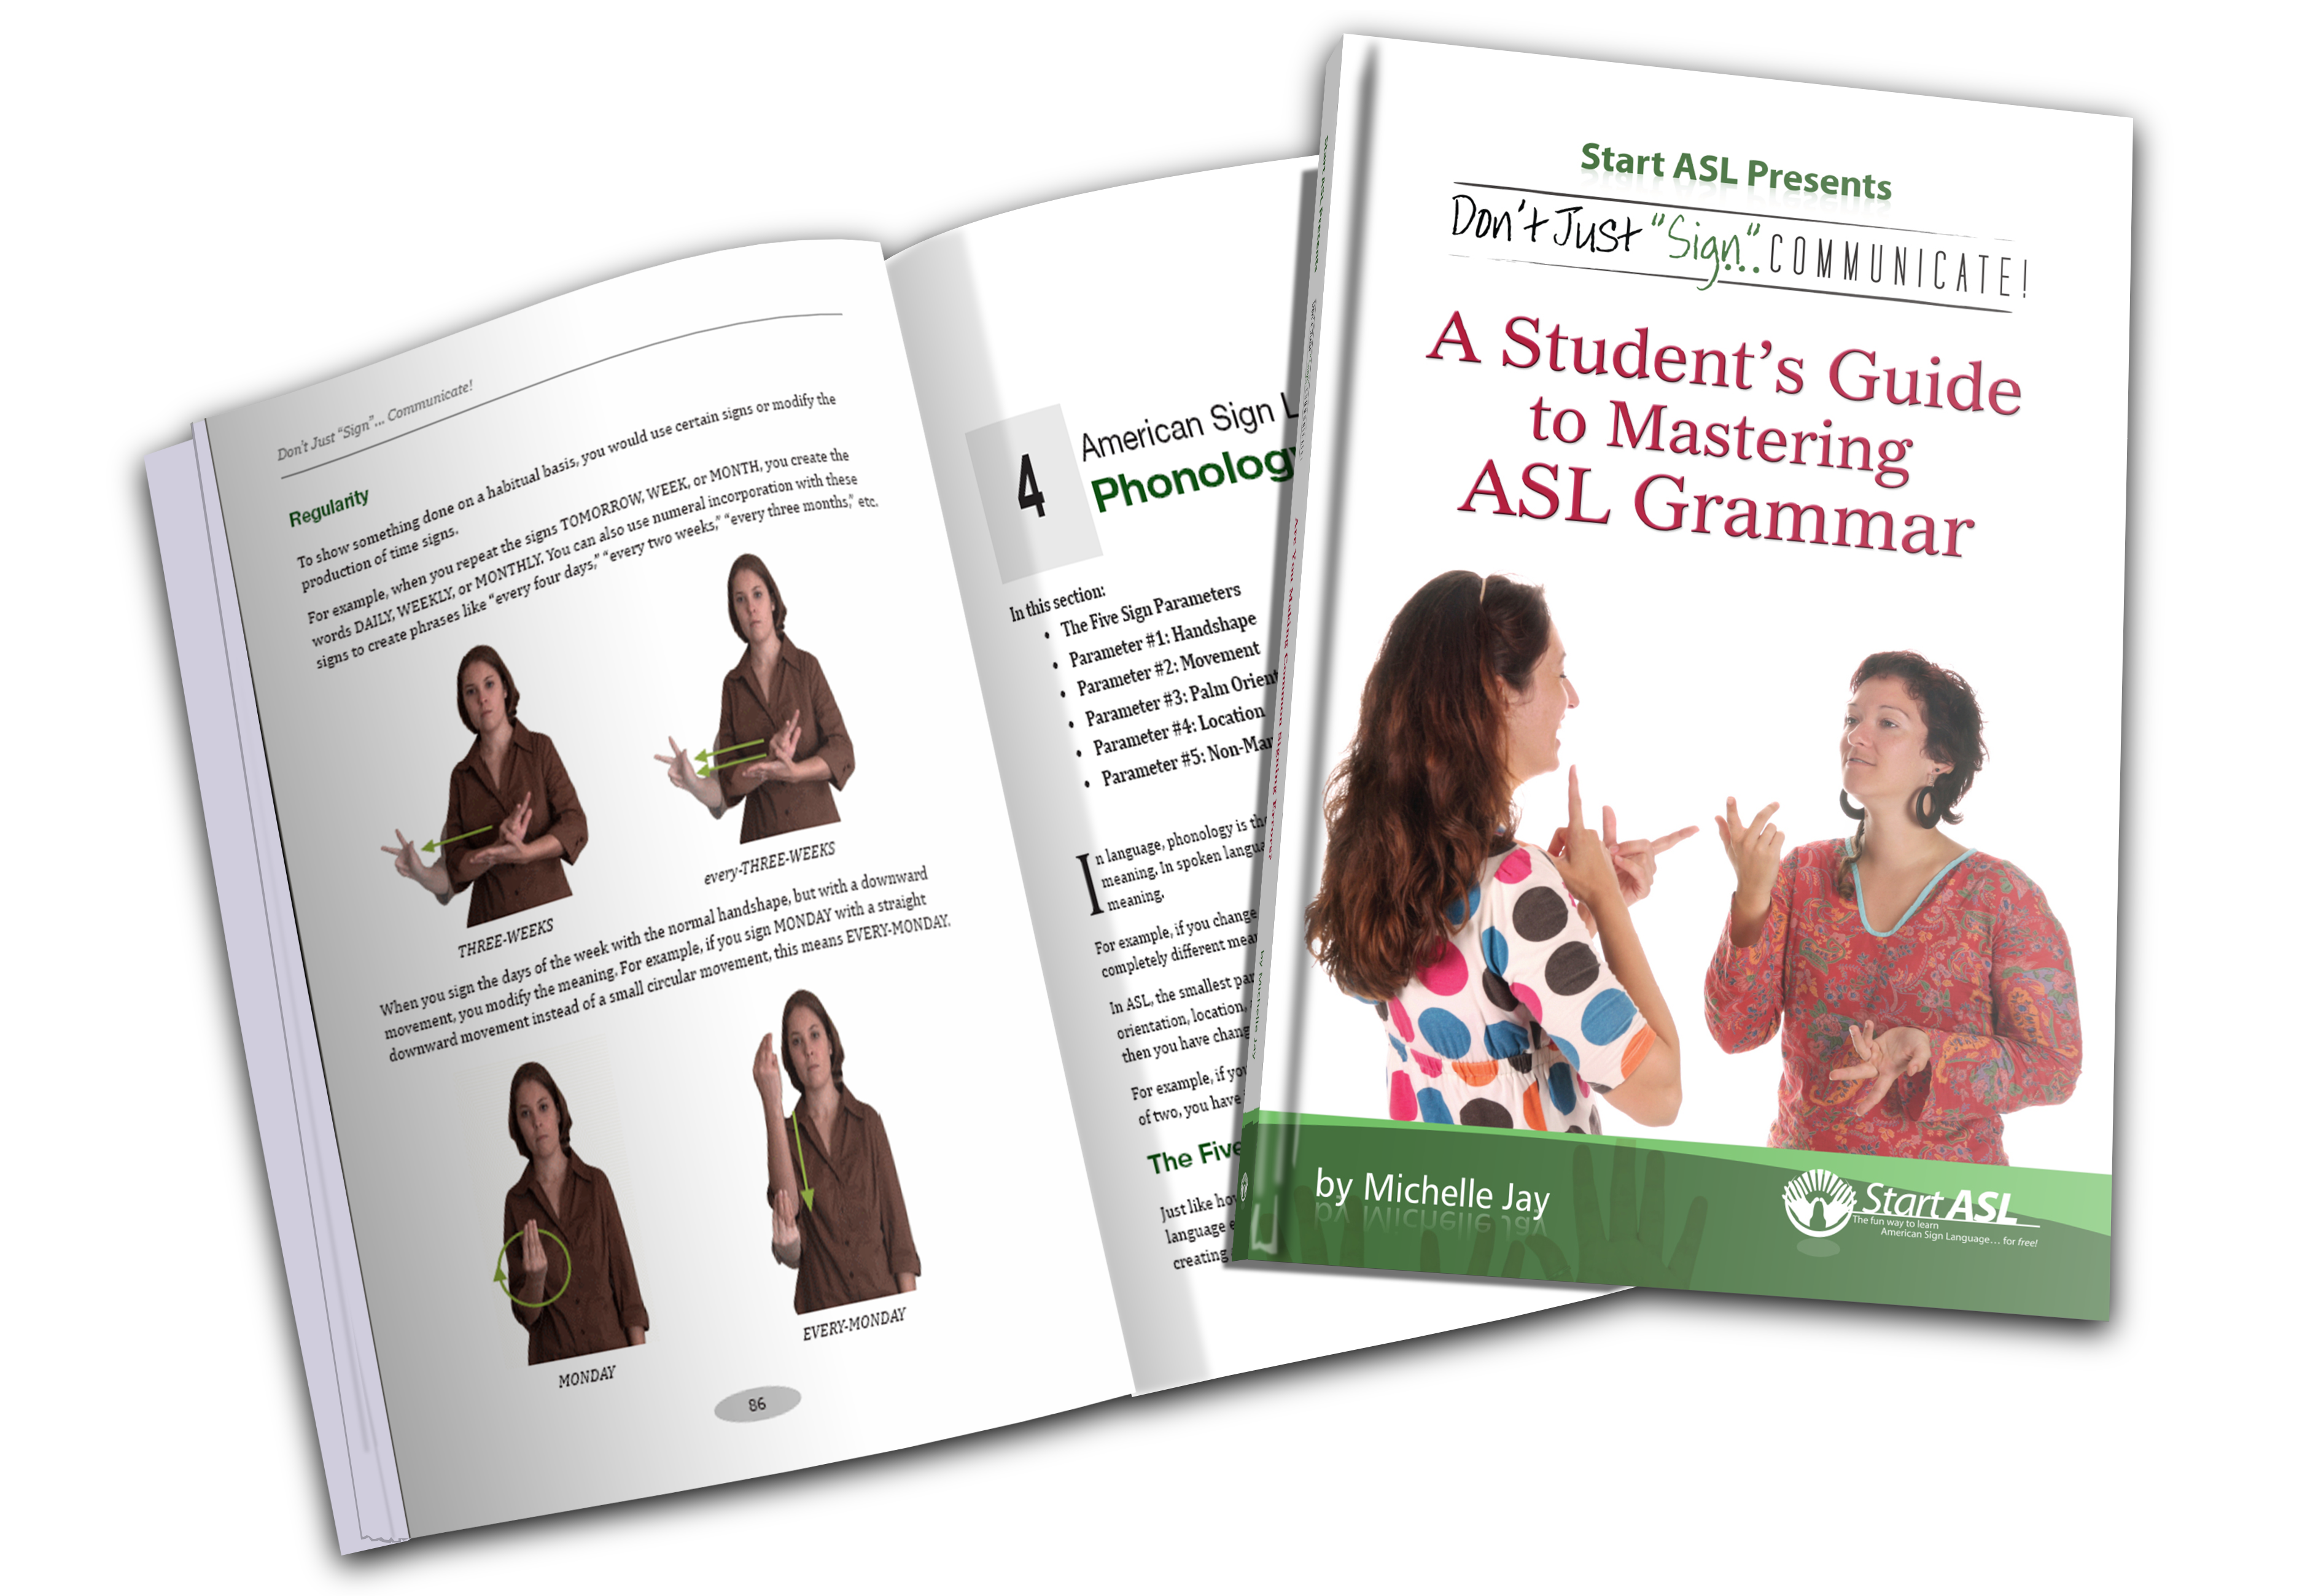 DJSC! A Student's Guide to Mastering ASL Grammar